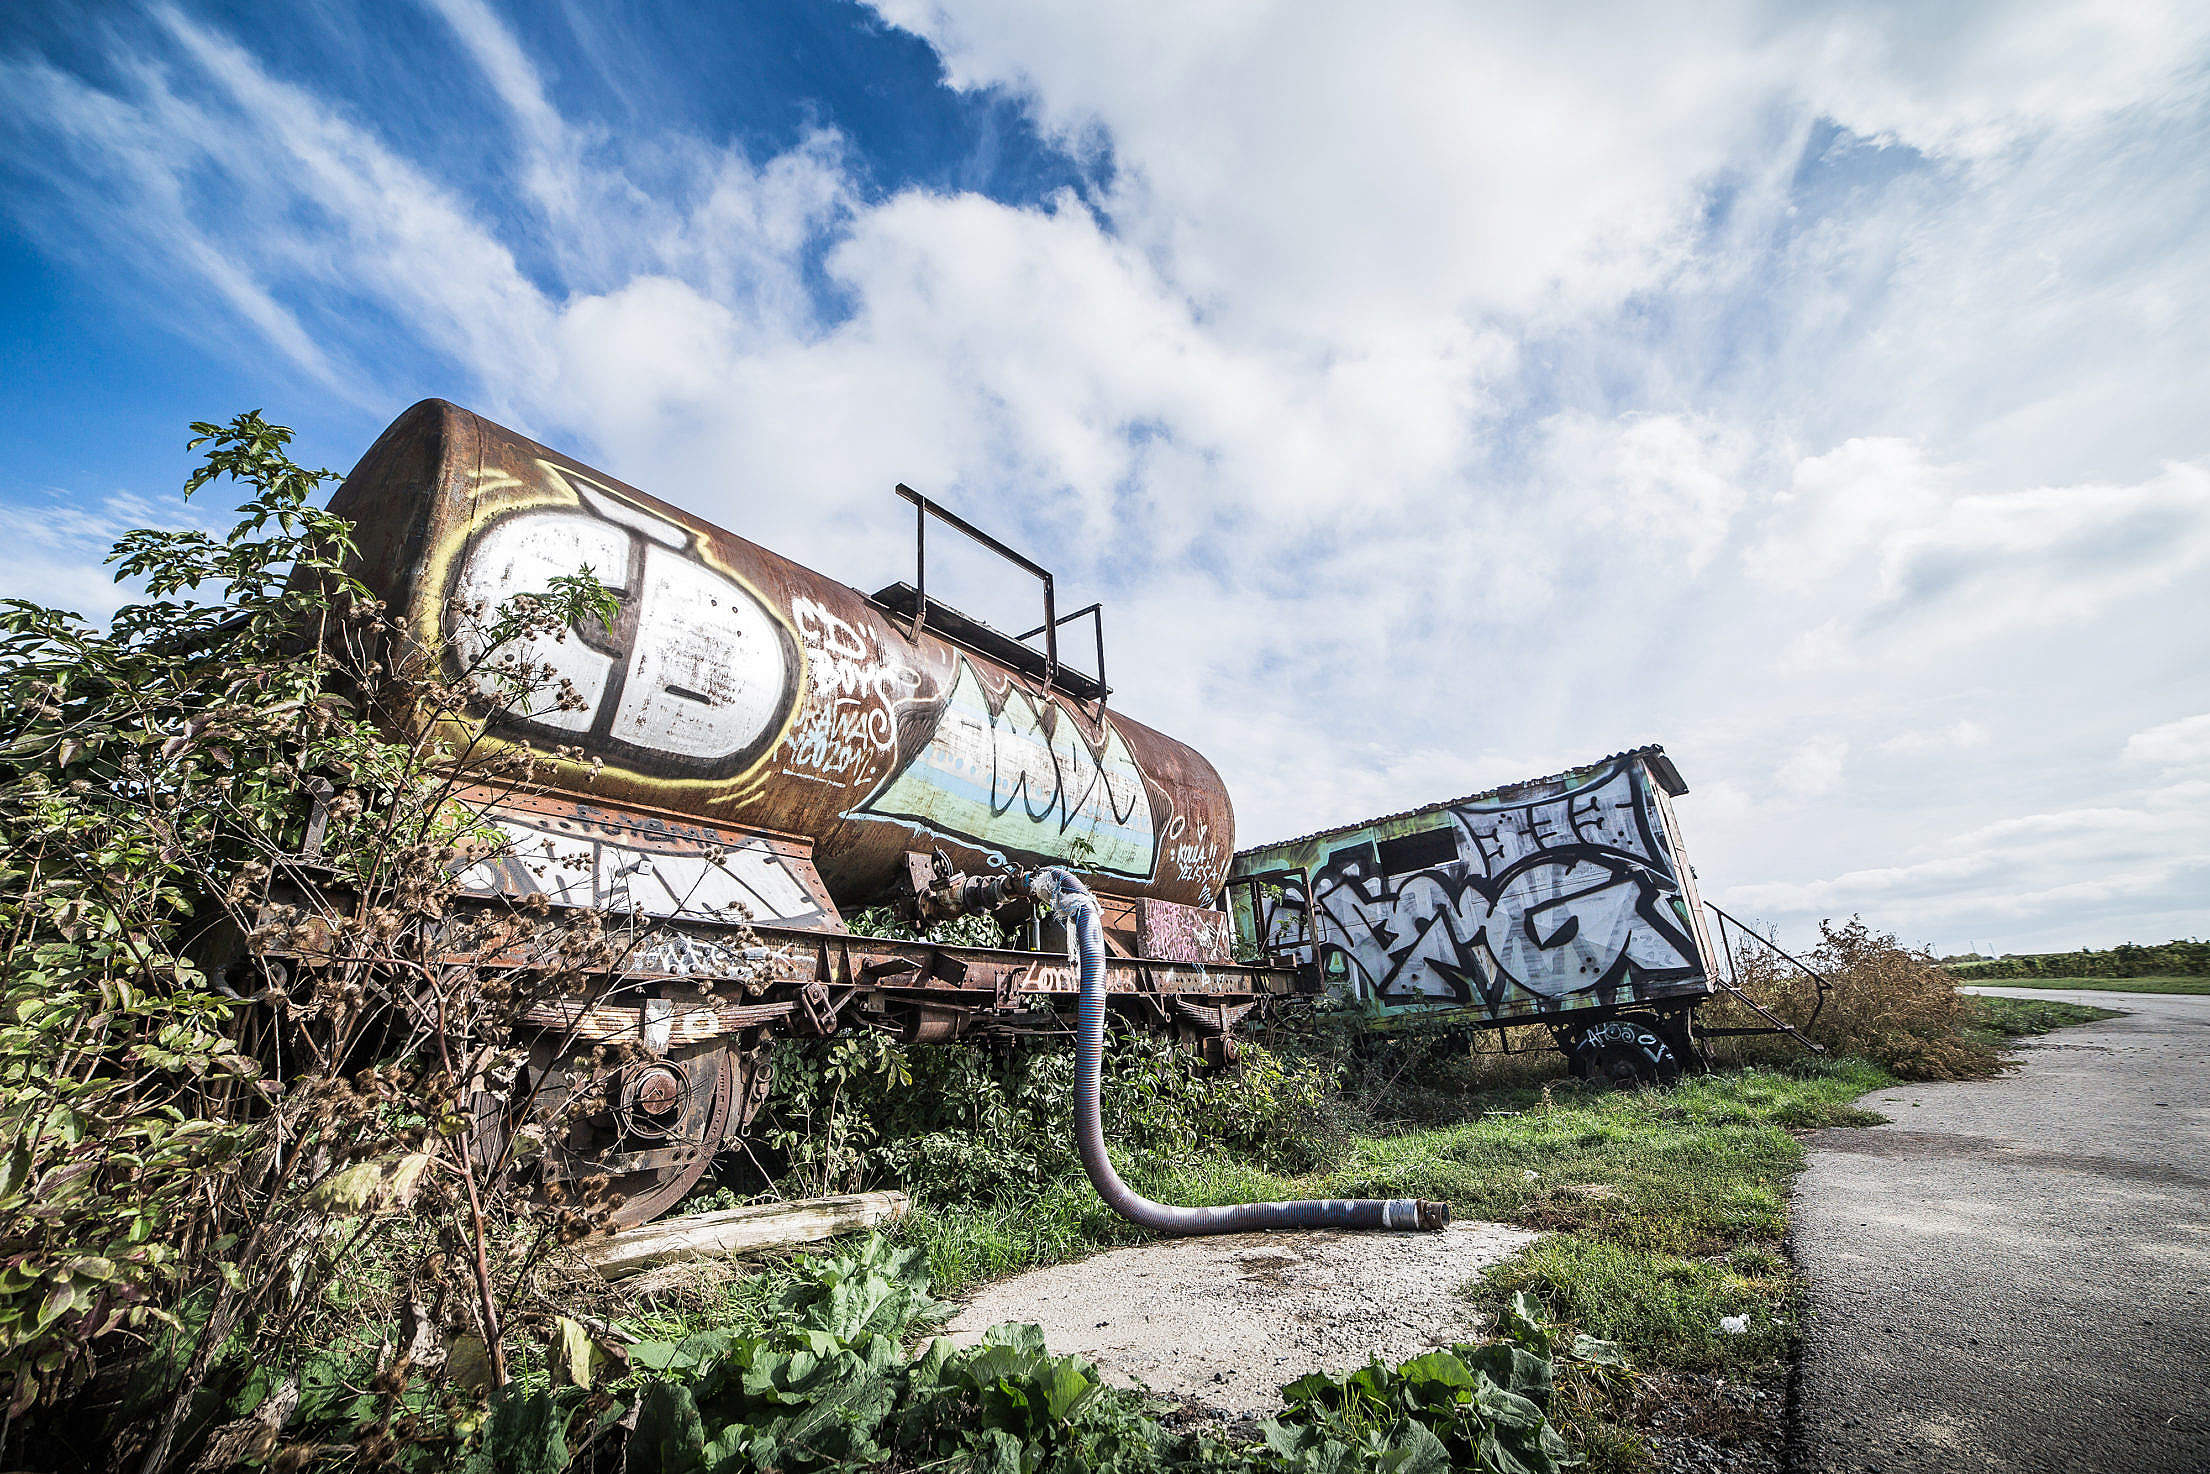 Rusted Wagon with Graffiti Art Alone in The Field Free Stock Photo